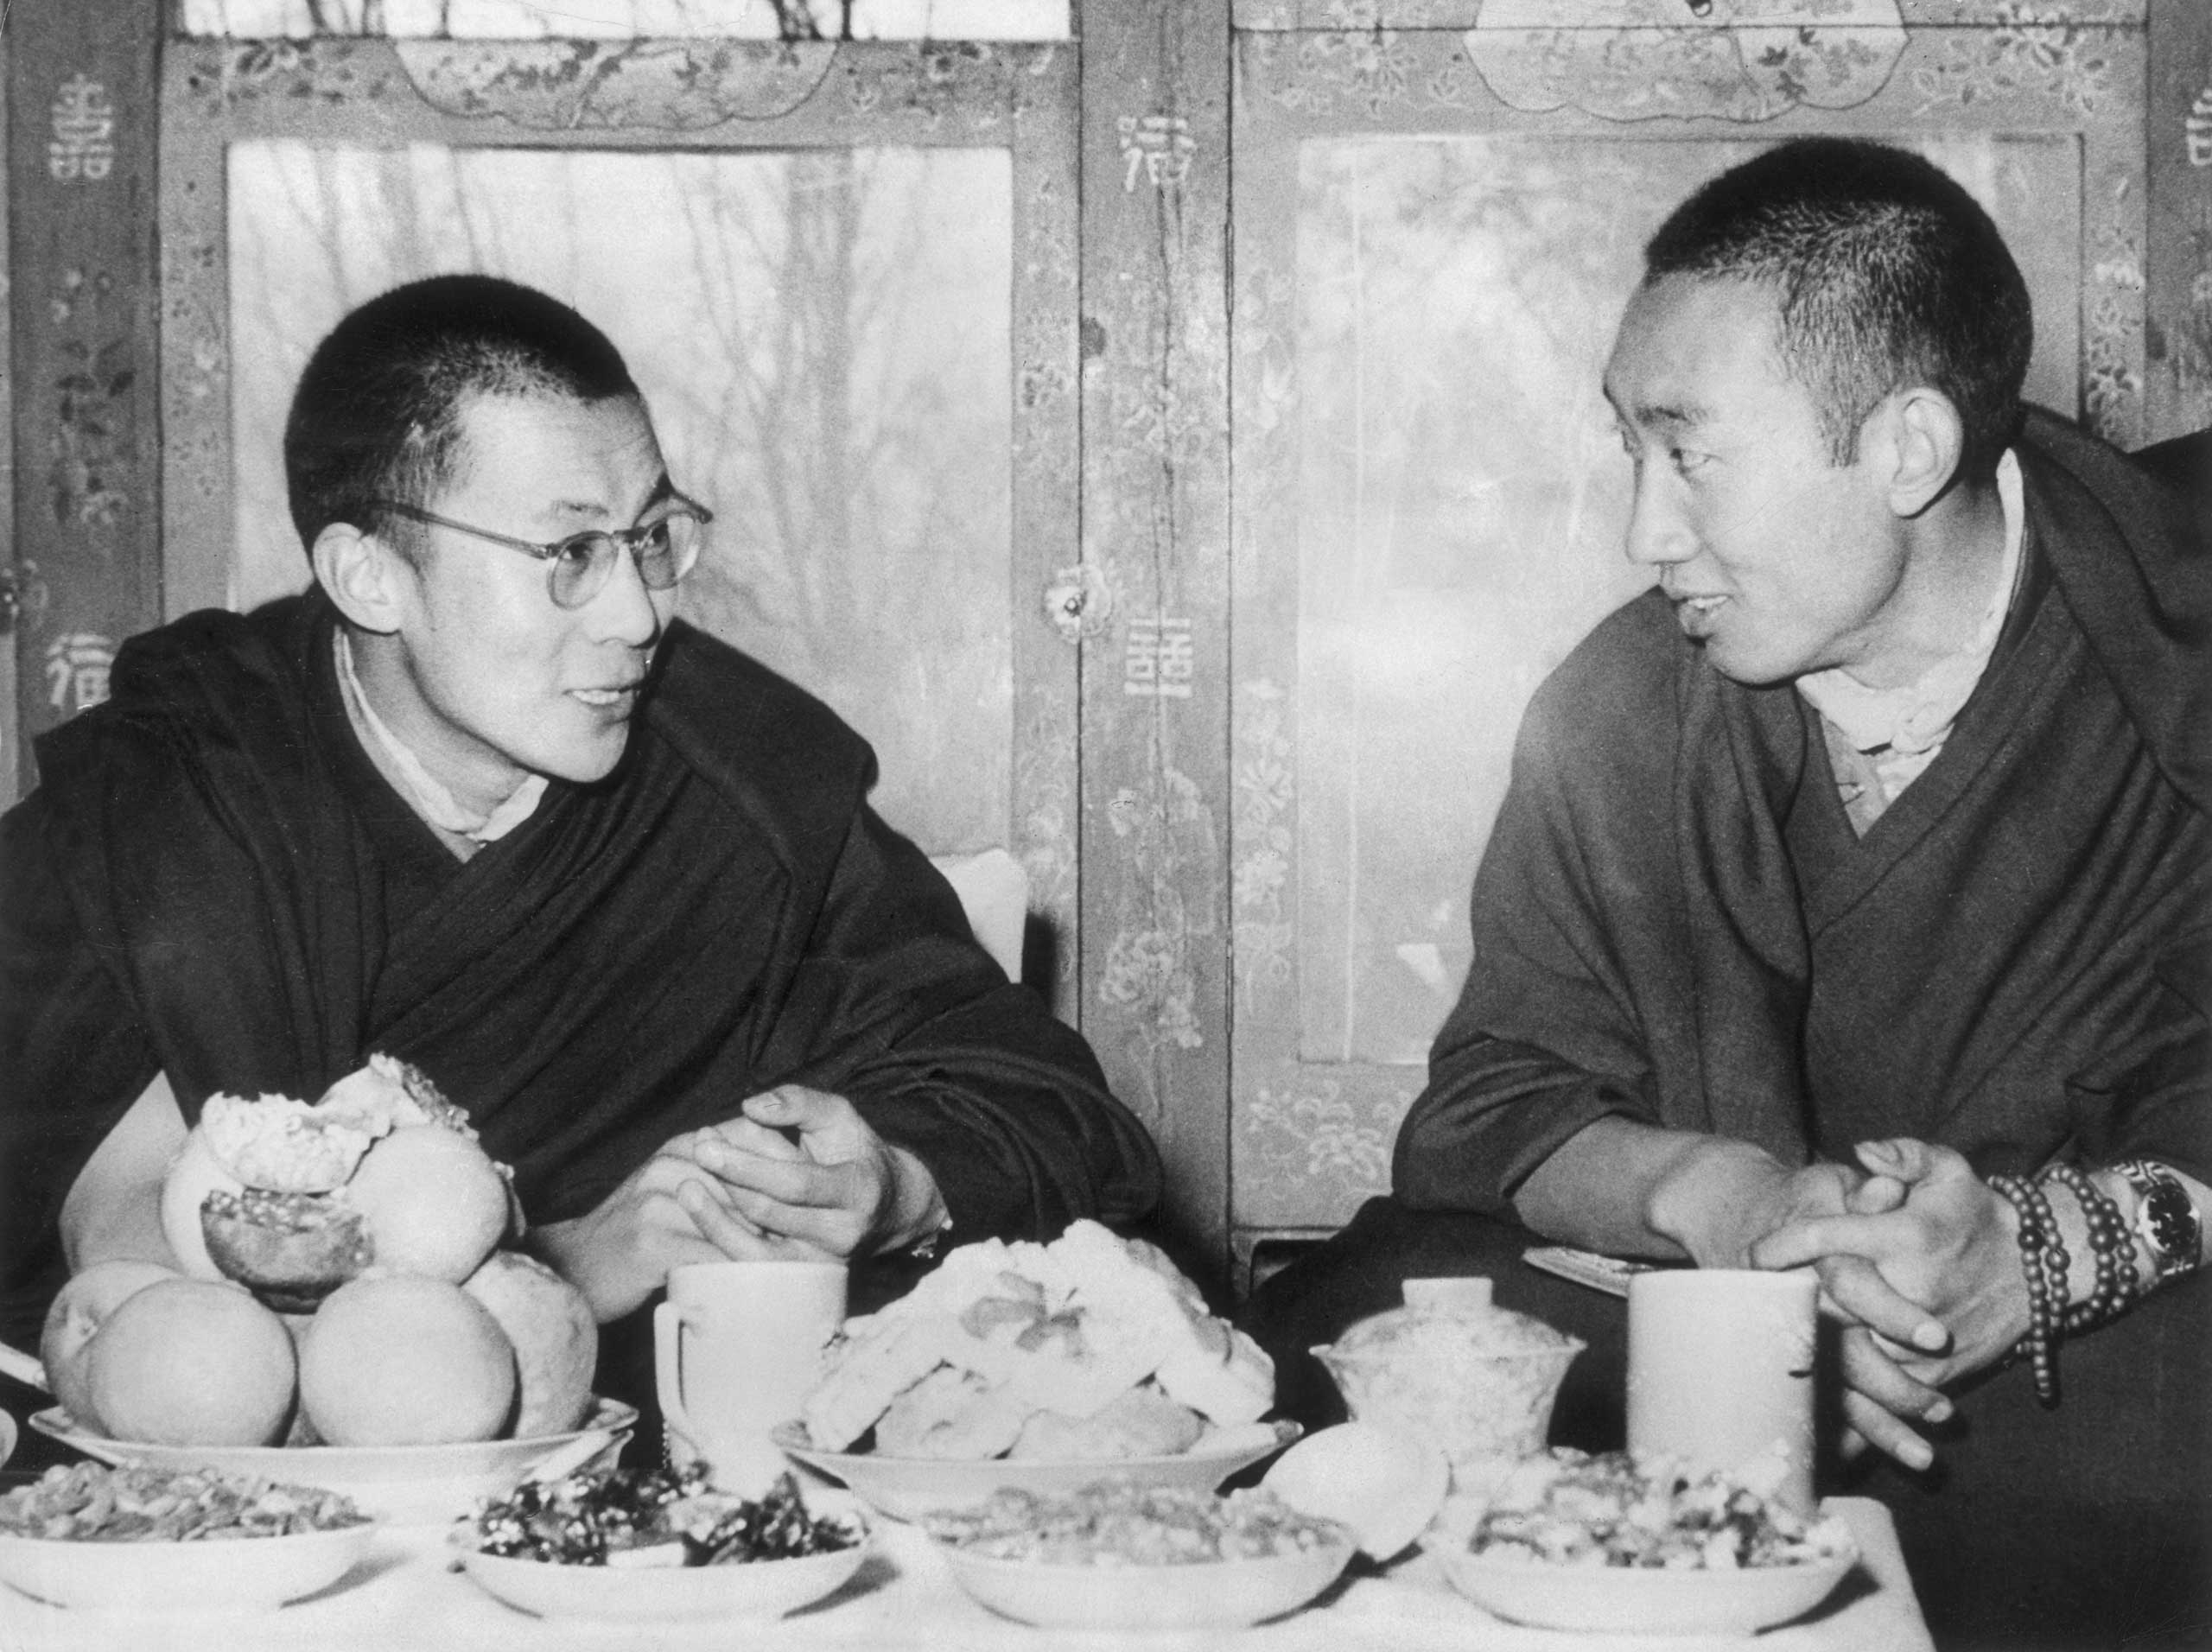 The Dalai Lama and the Panchen Lama, second in rank as spiritual leader, pictured in Tibet in 1954.